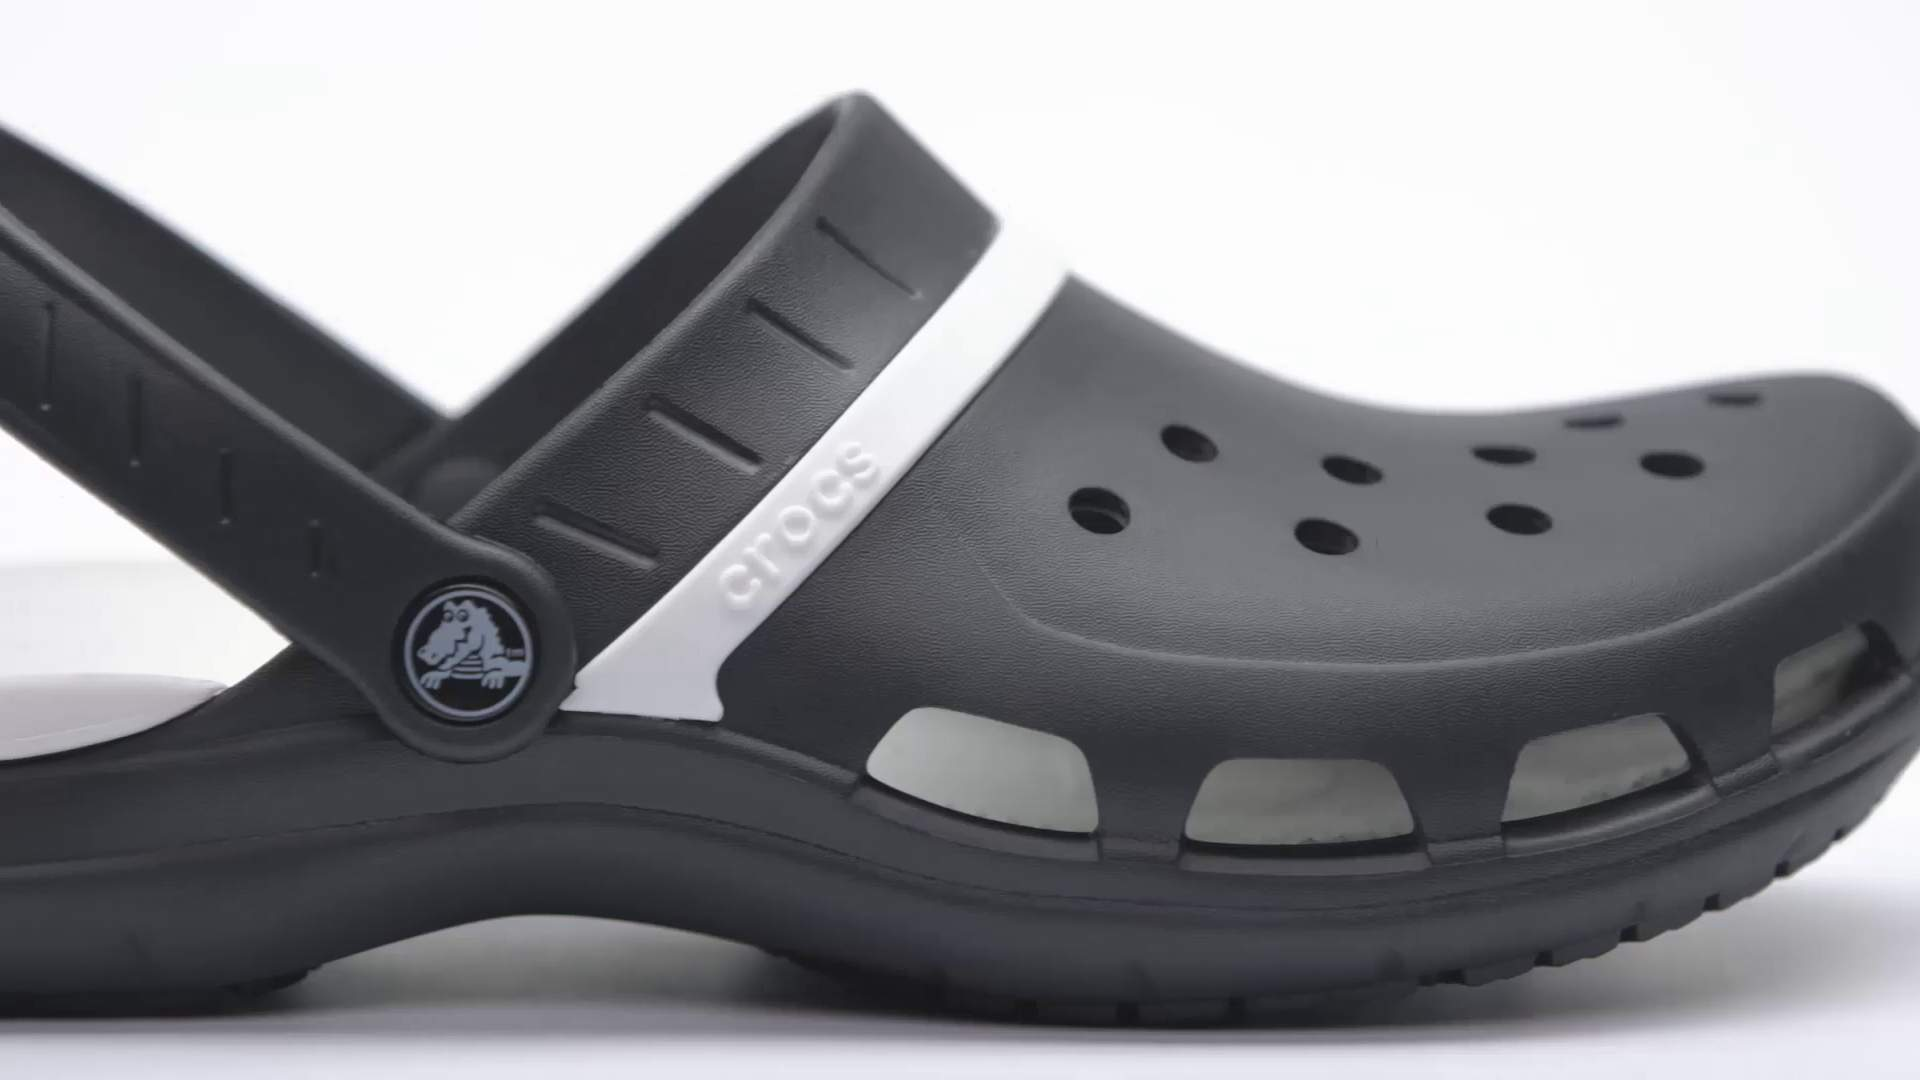 meticulous dyeing processes search for newest many fashionable MODI Sport Clog - Crocs